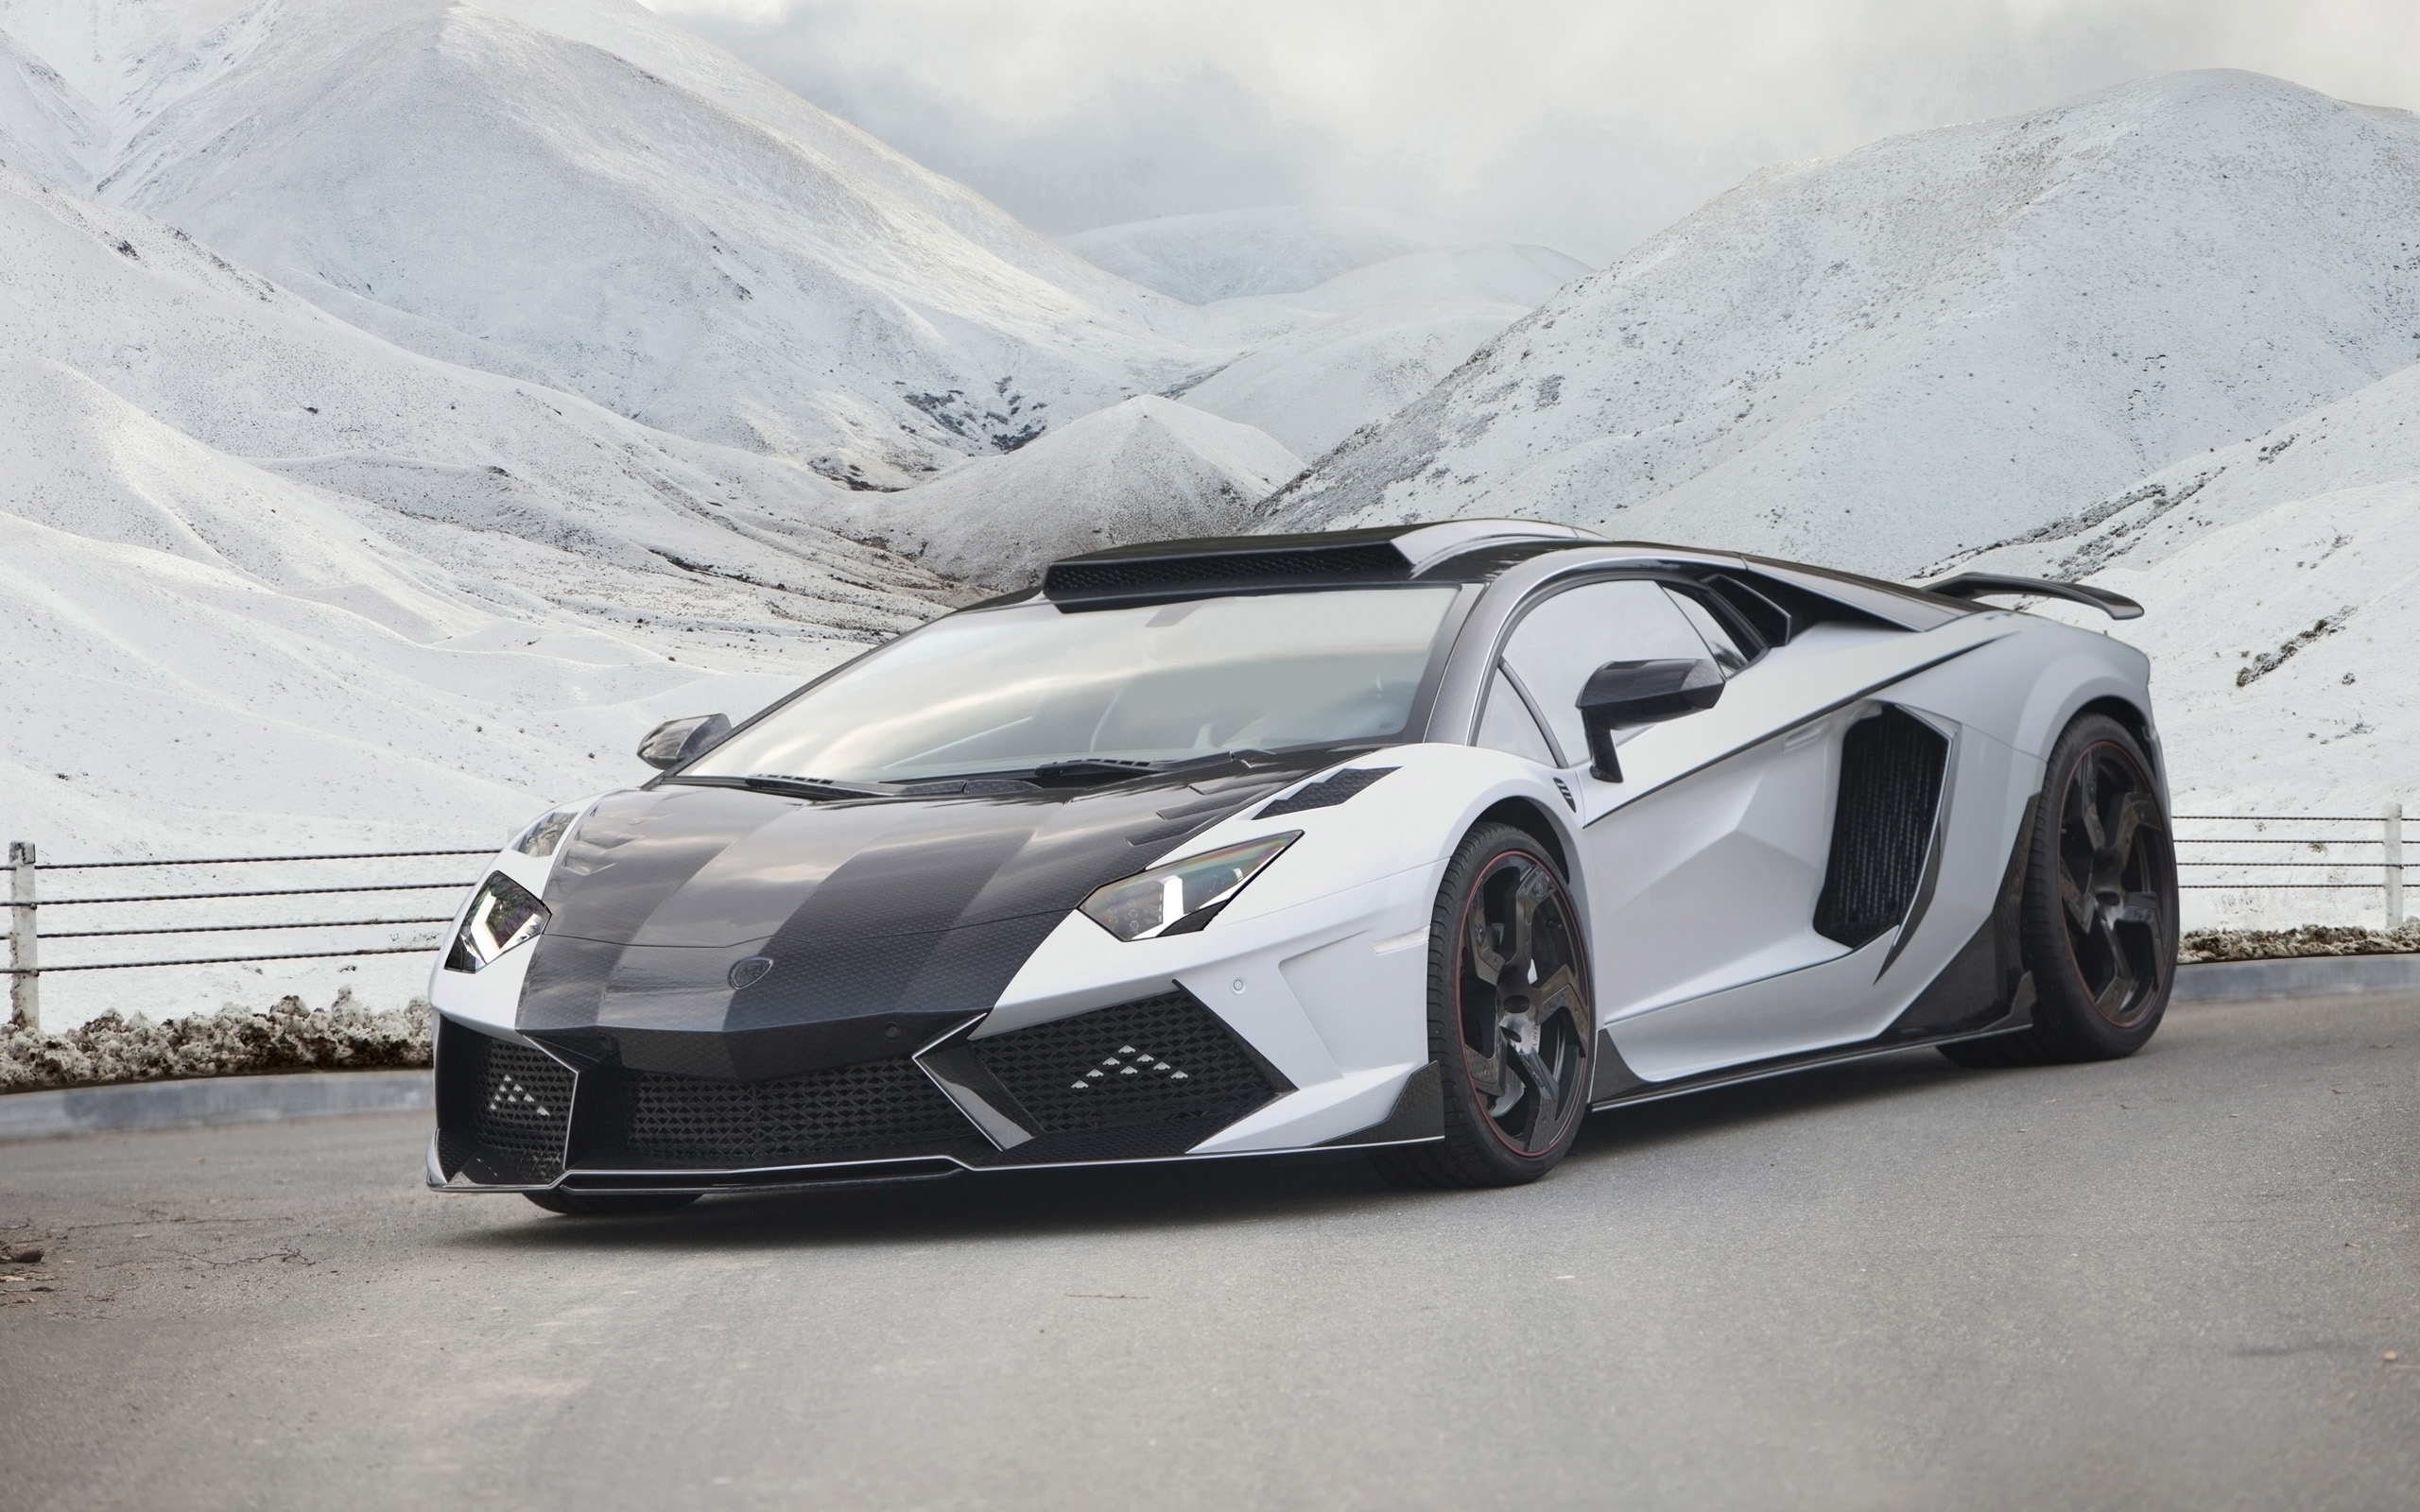 2014 mansory lamborghini aventador carbonado gt wallpaper hd car wallpapers id 4289